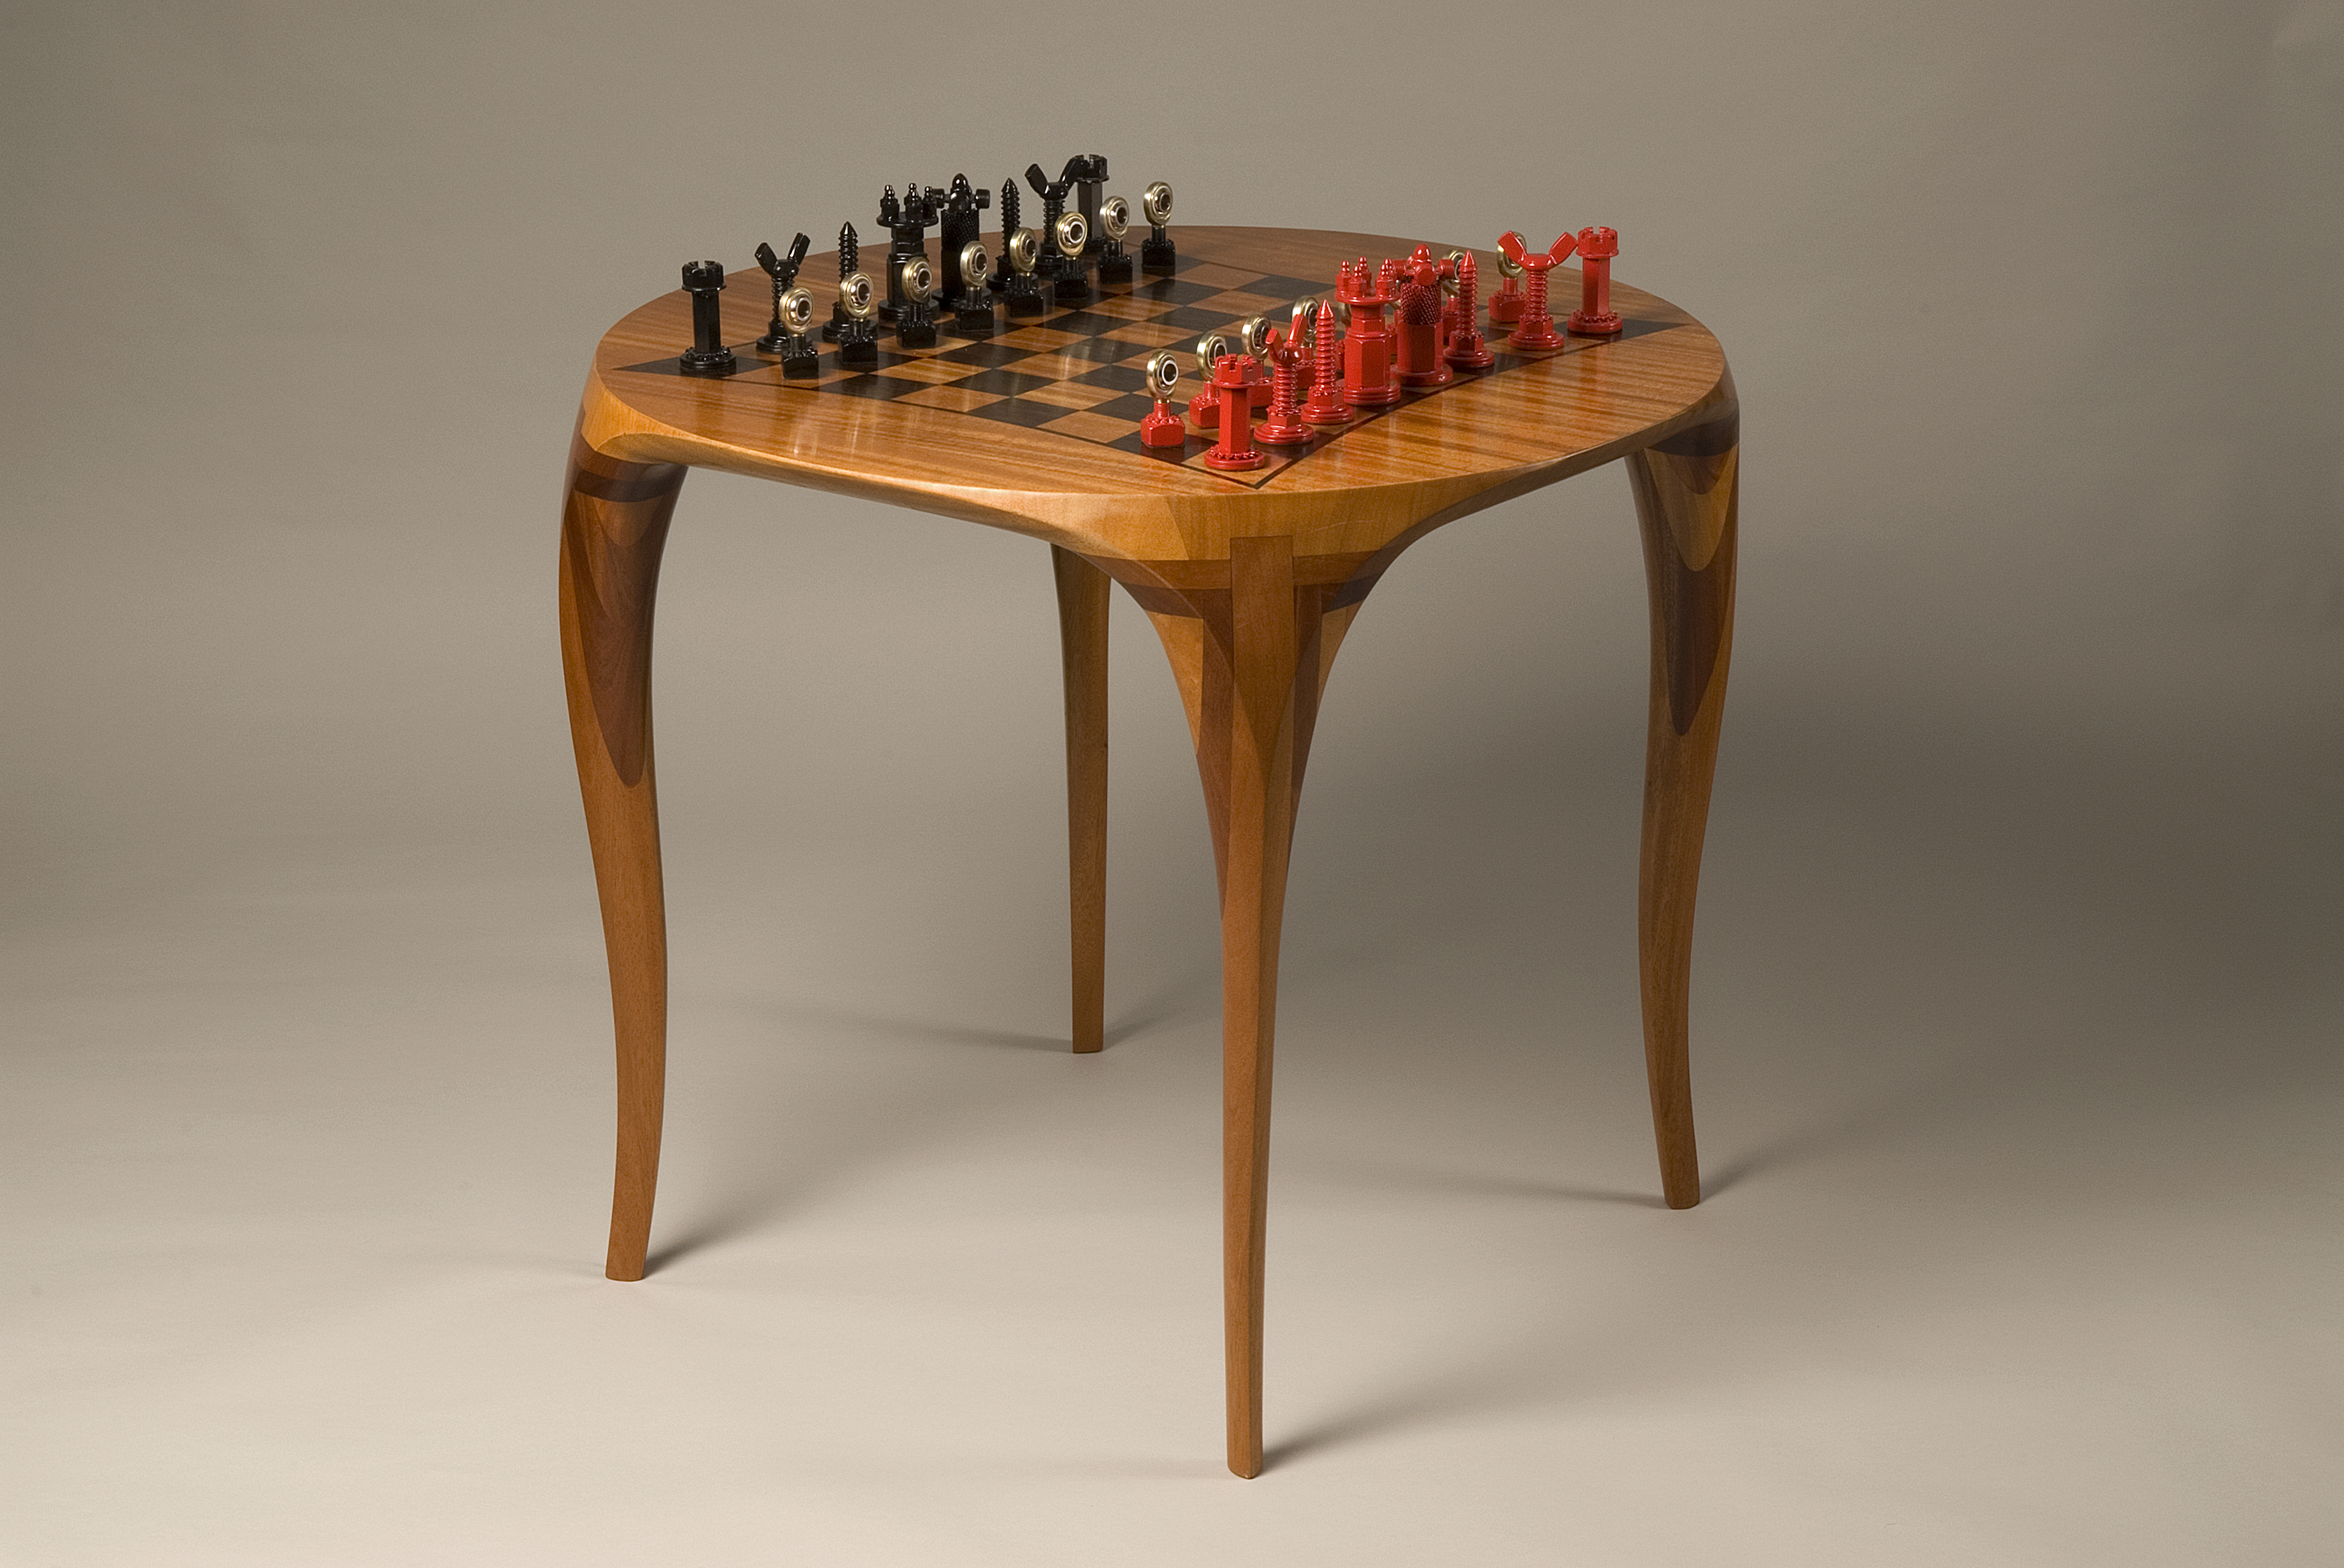 1000 images about chess on pinterest - Wooden chess tables ...